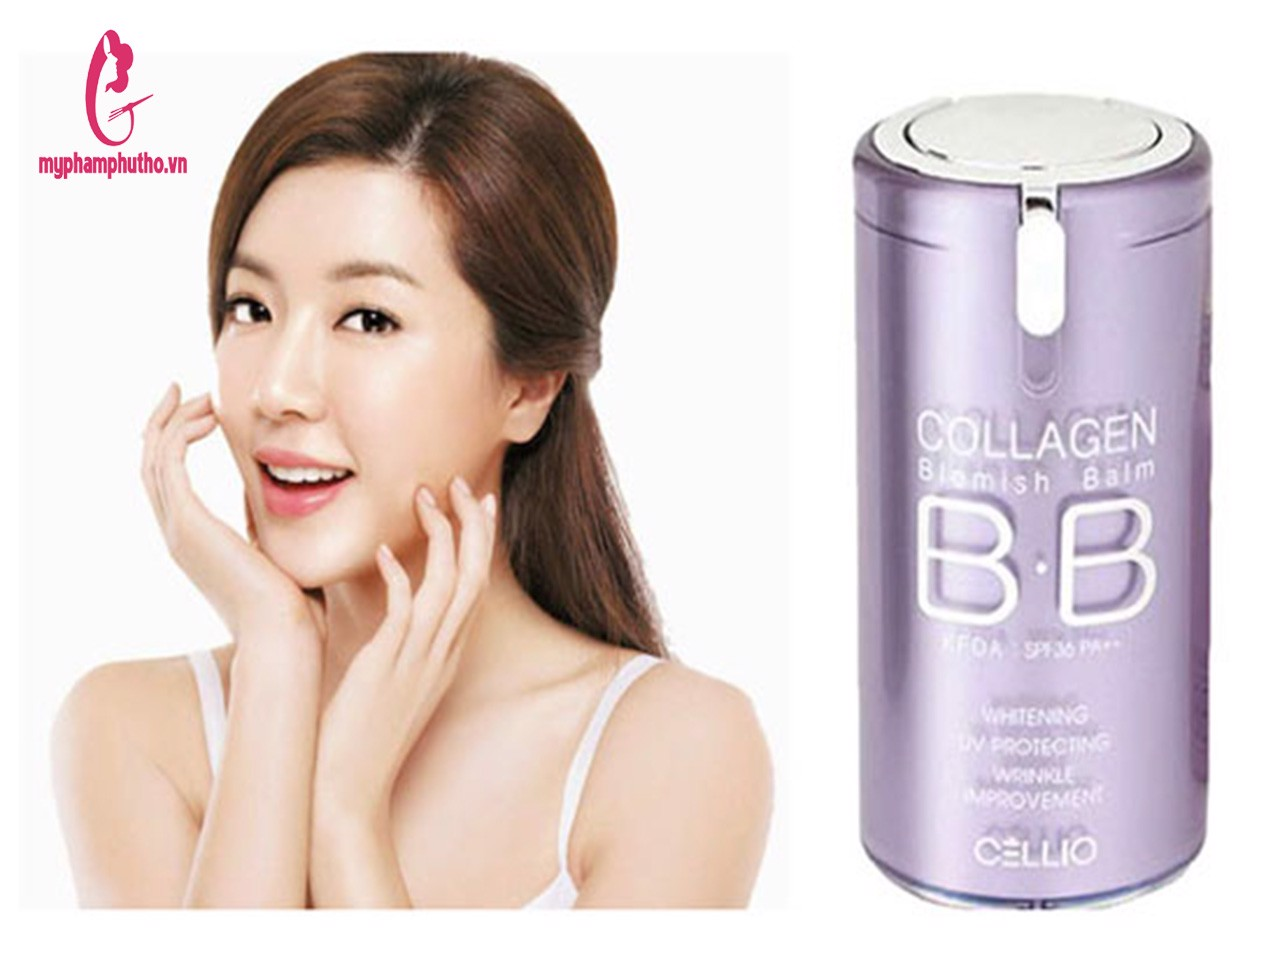 Review Kem nền BB Cellio Collagen Blemish Balm